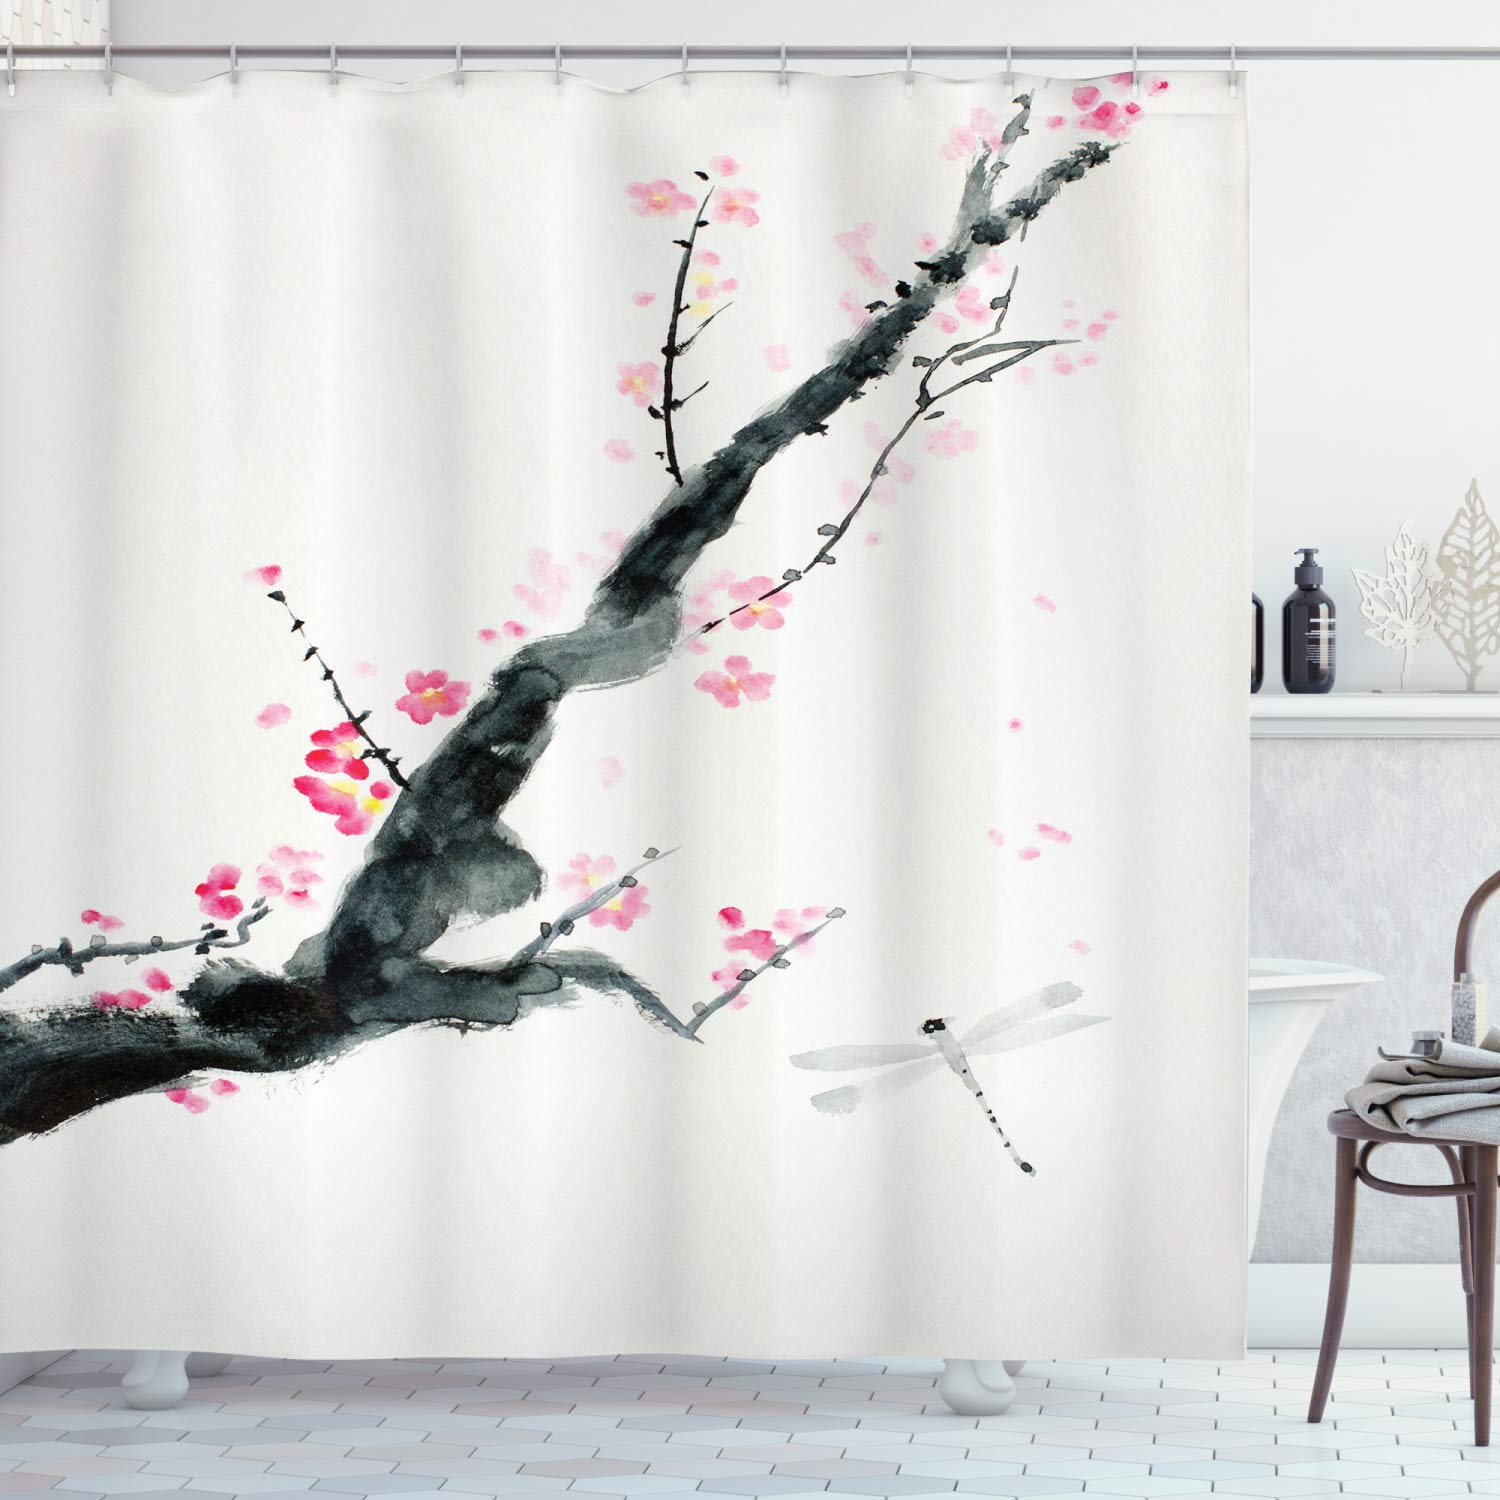 """Ambesonne Dragonfly Shower Curtain, Branch of a Pink Cherry Blossom Sakura Tree Bud and a Dragonfly Dramatic Artisan, Cloth Fabric Bathroom Decor Set with Hooks, 75"""" Long, Jungle Green"""